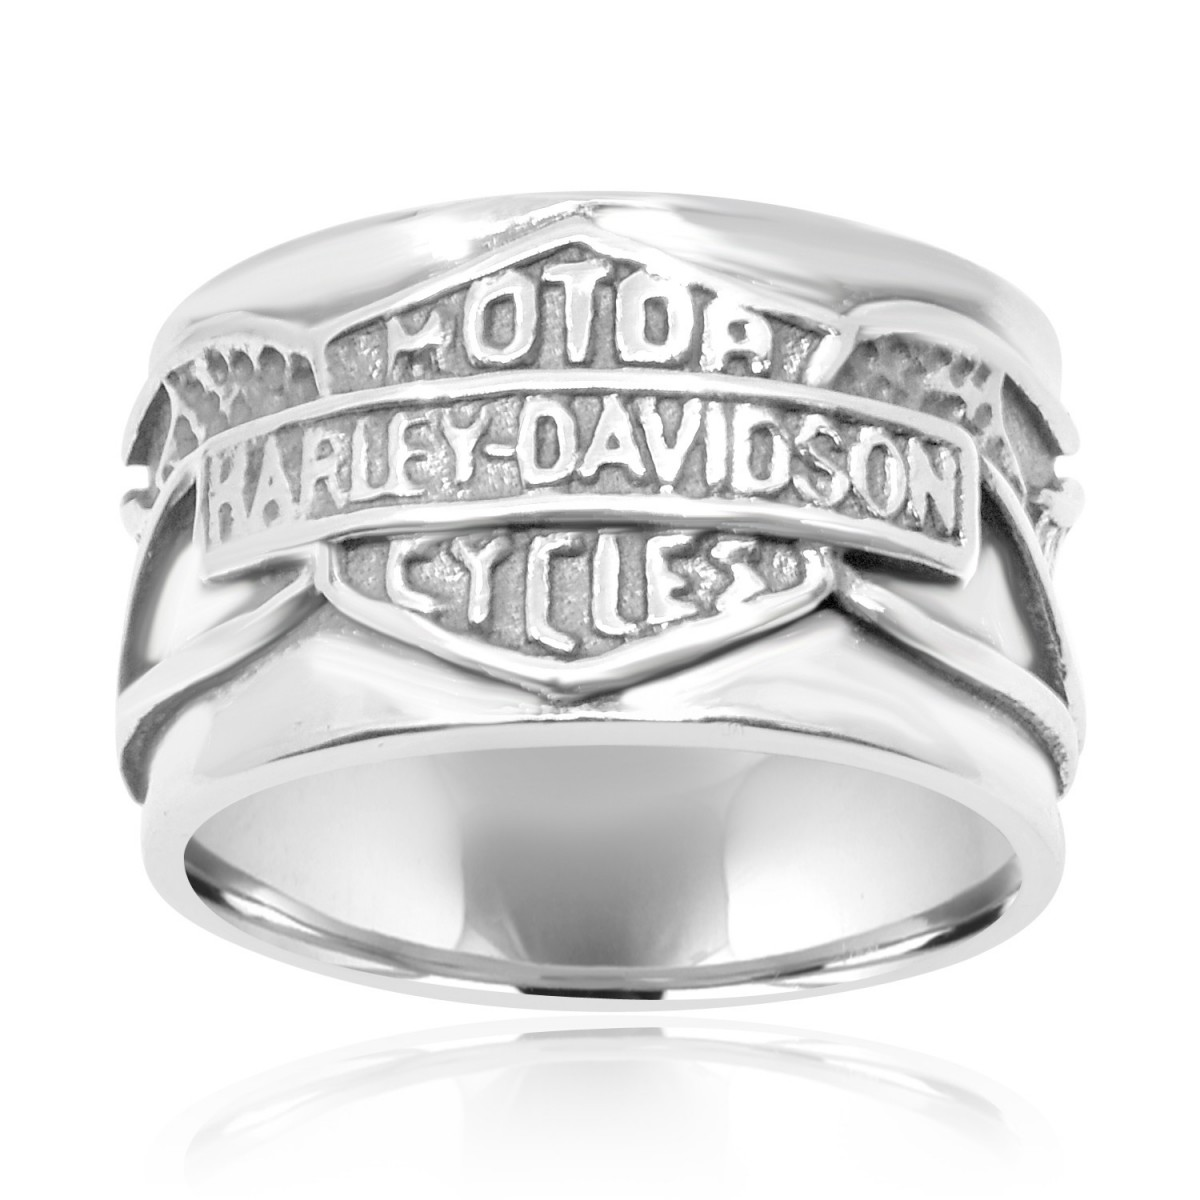 It is a graphic of Sterling Silver Harley- Davidson Ring